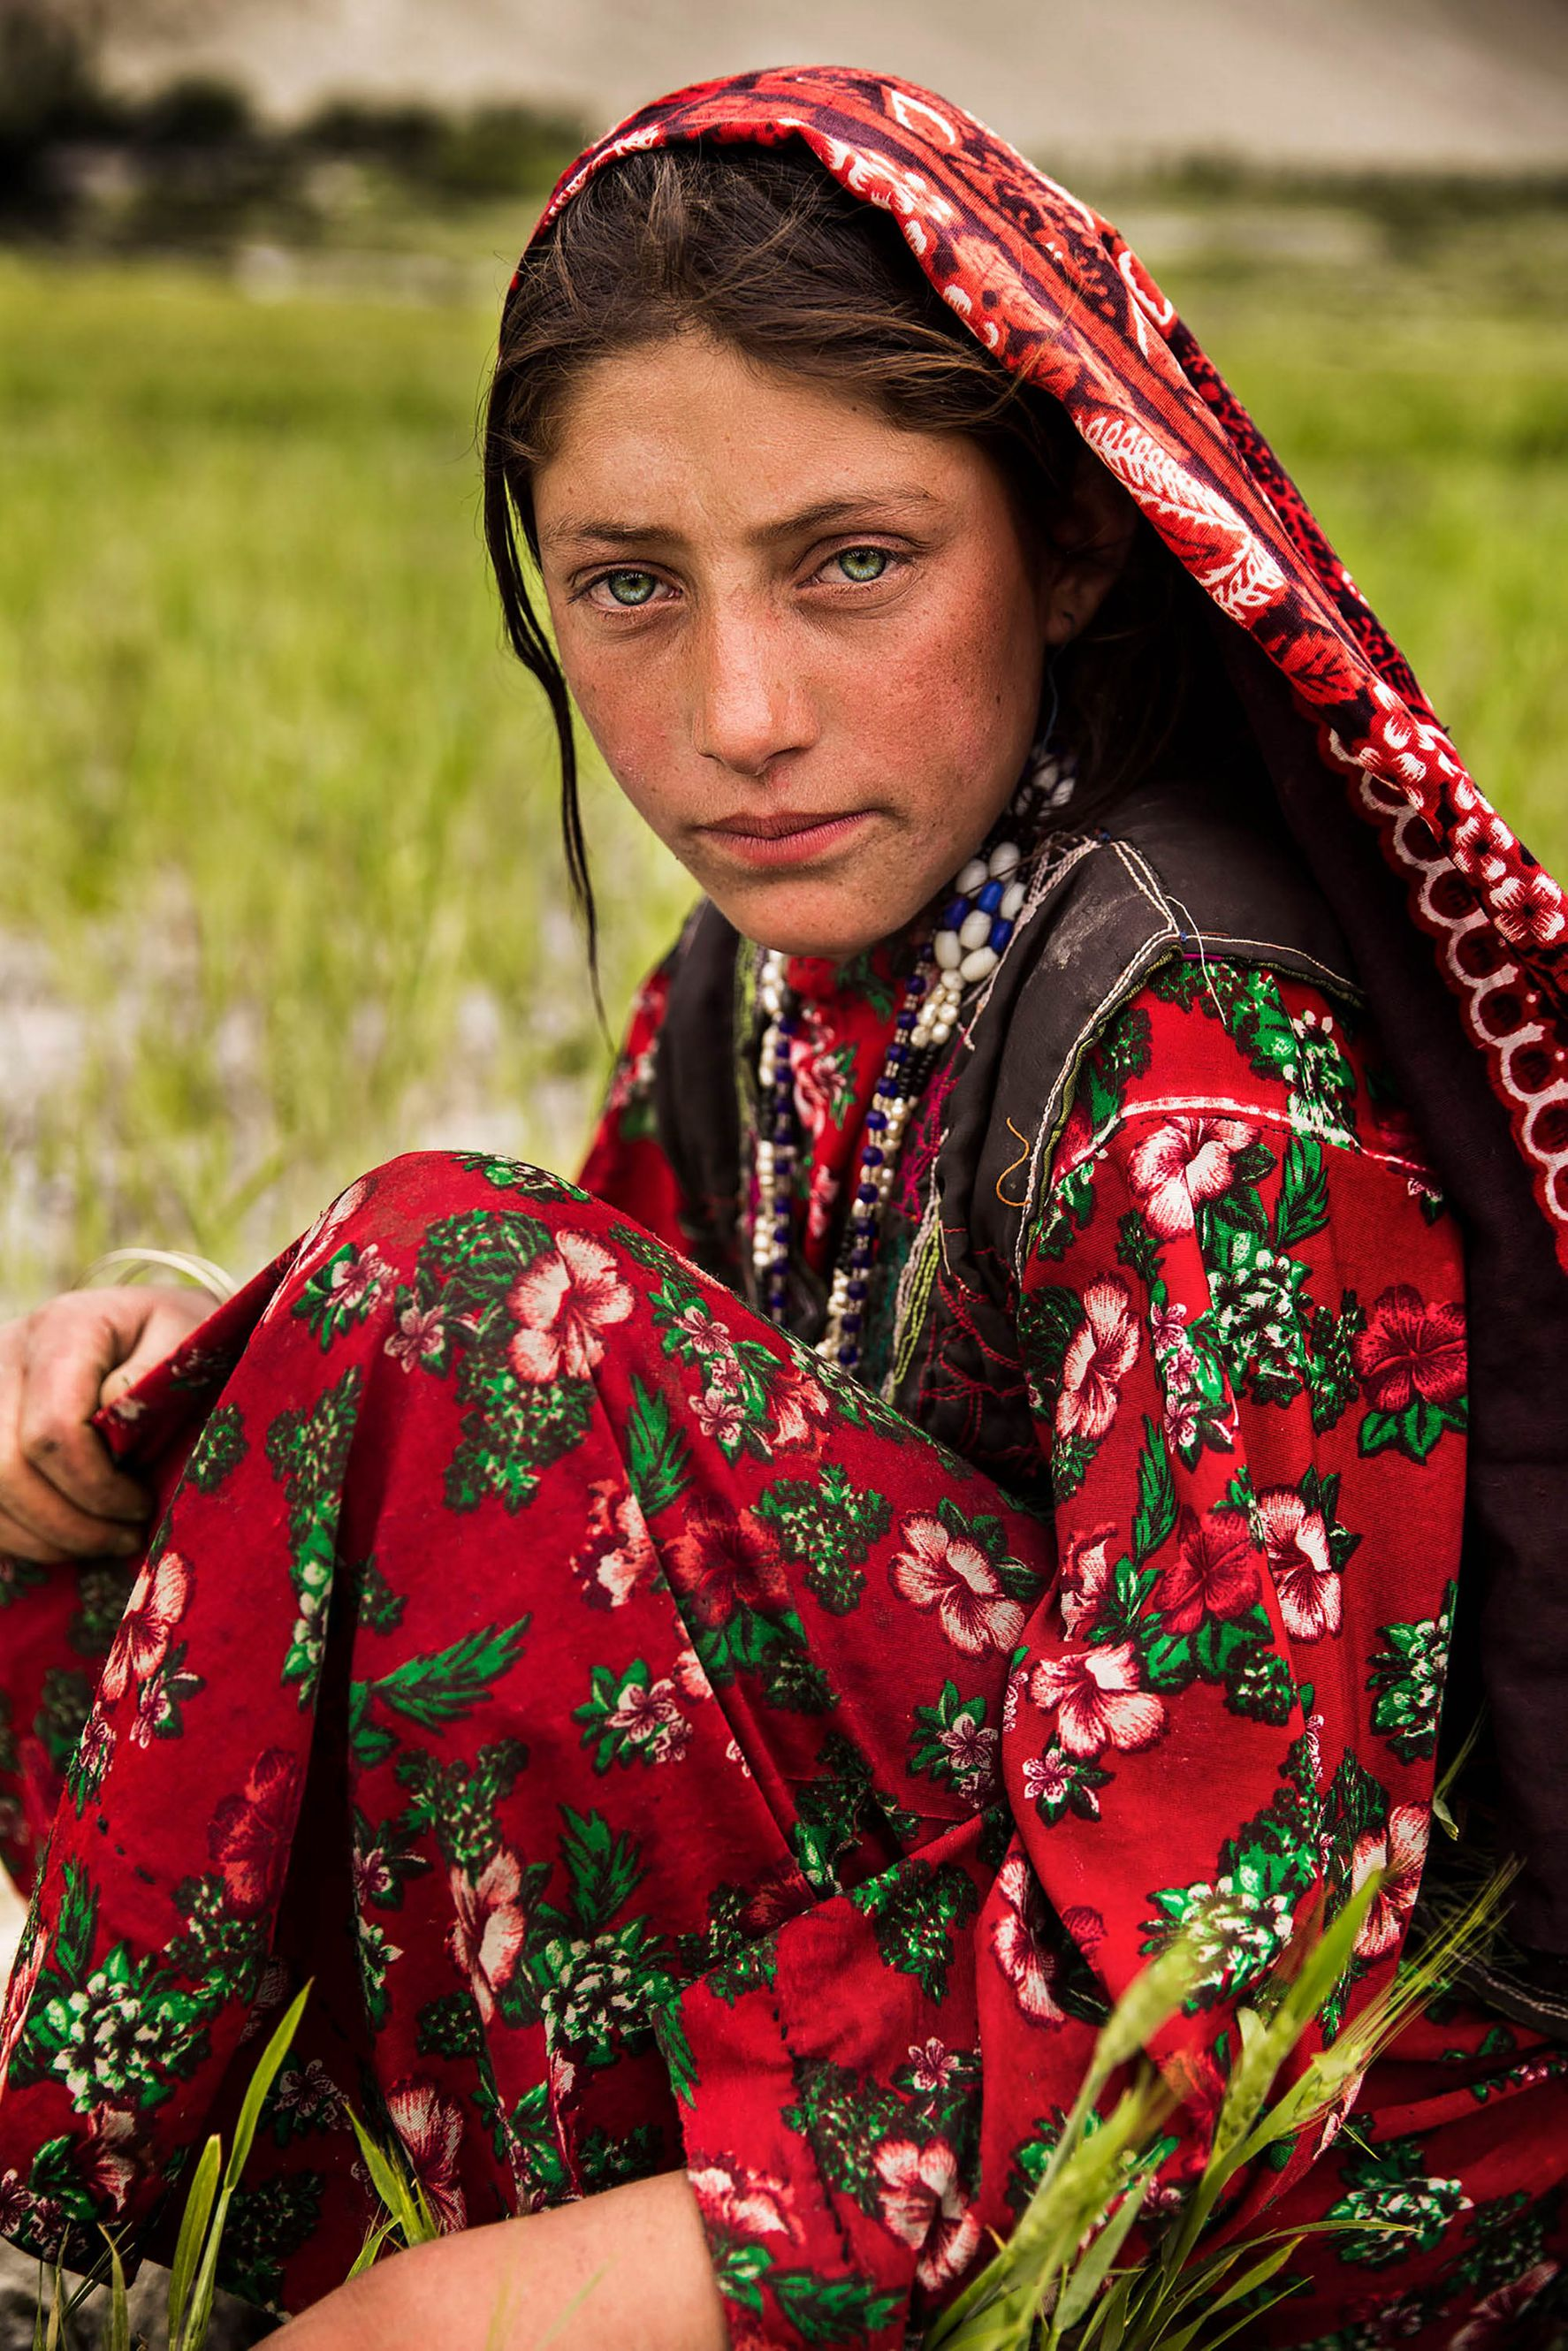 Name not provided. Wakhan Corridor, Afghanistan.